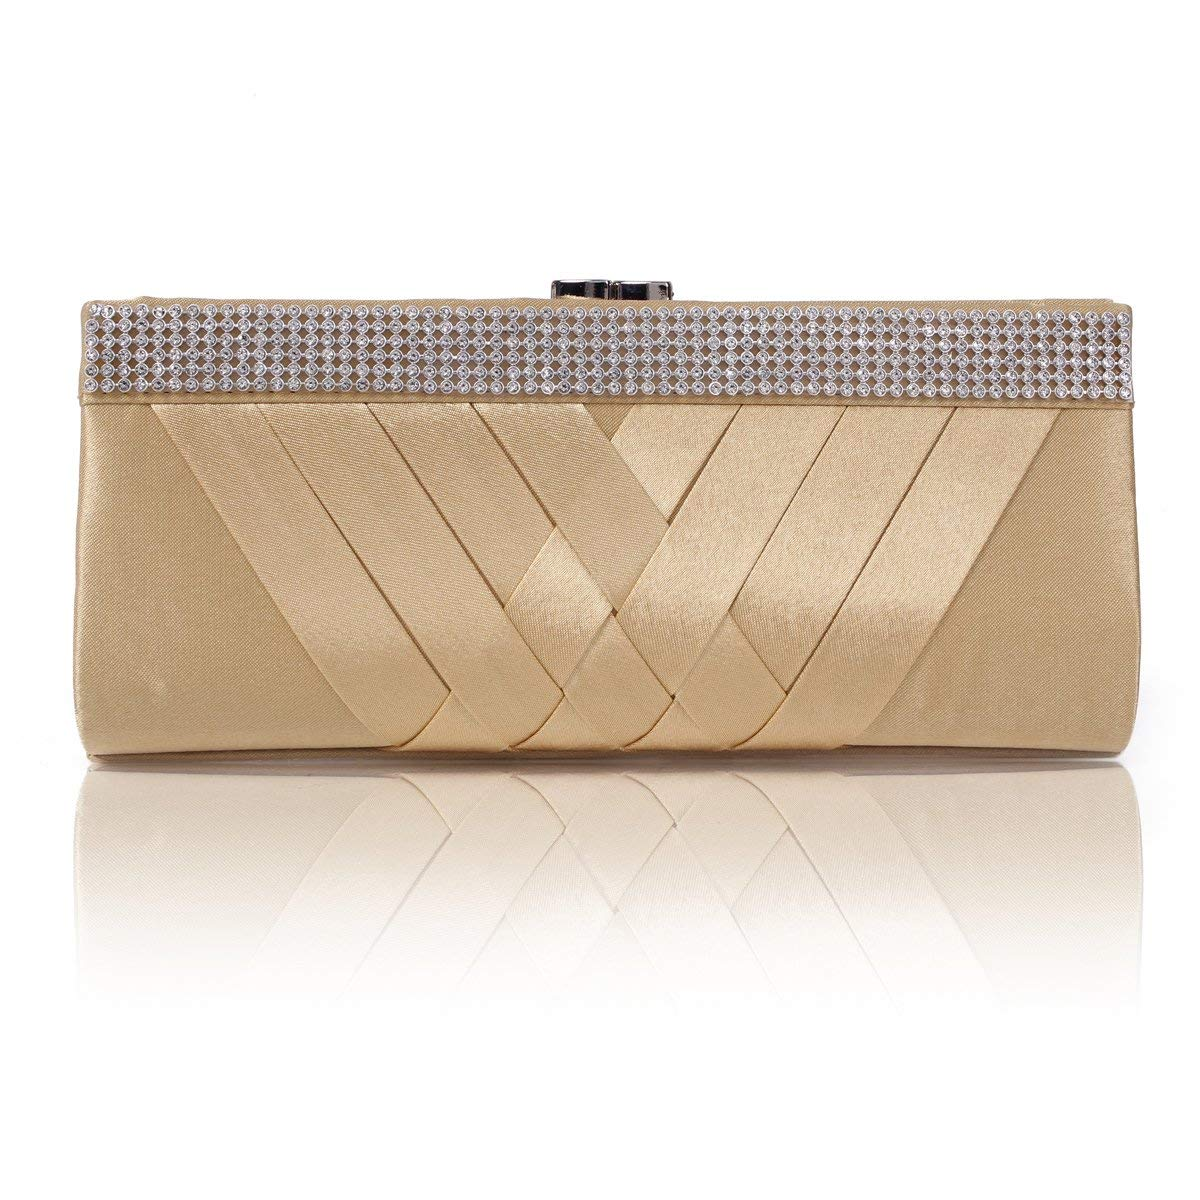 334dadd5f1 Get Quotations · Damara Women s Chic Statin Pleated Clutch Rhinestones Evening  Bag